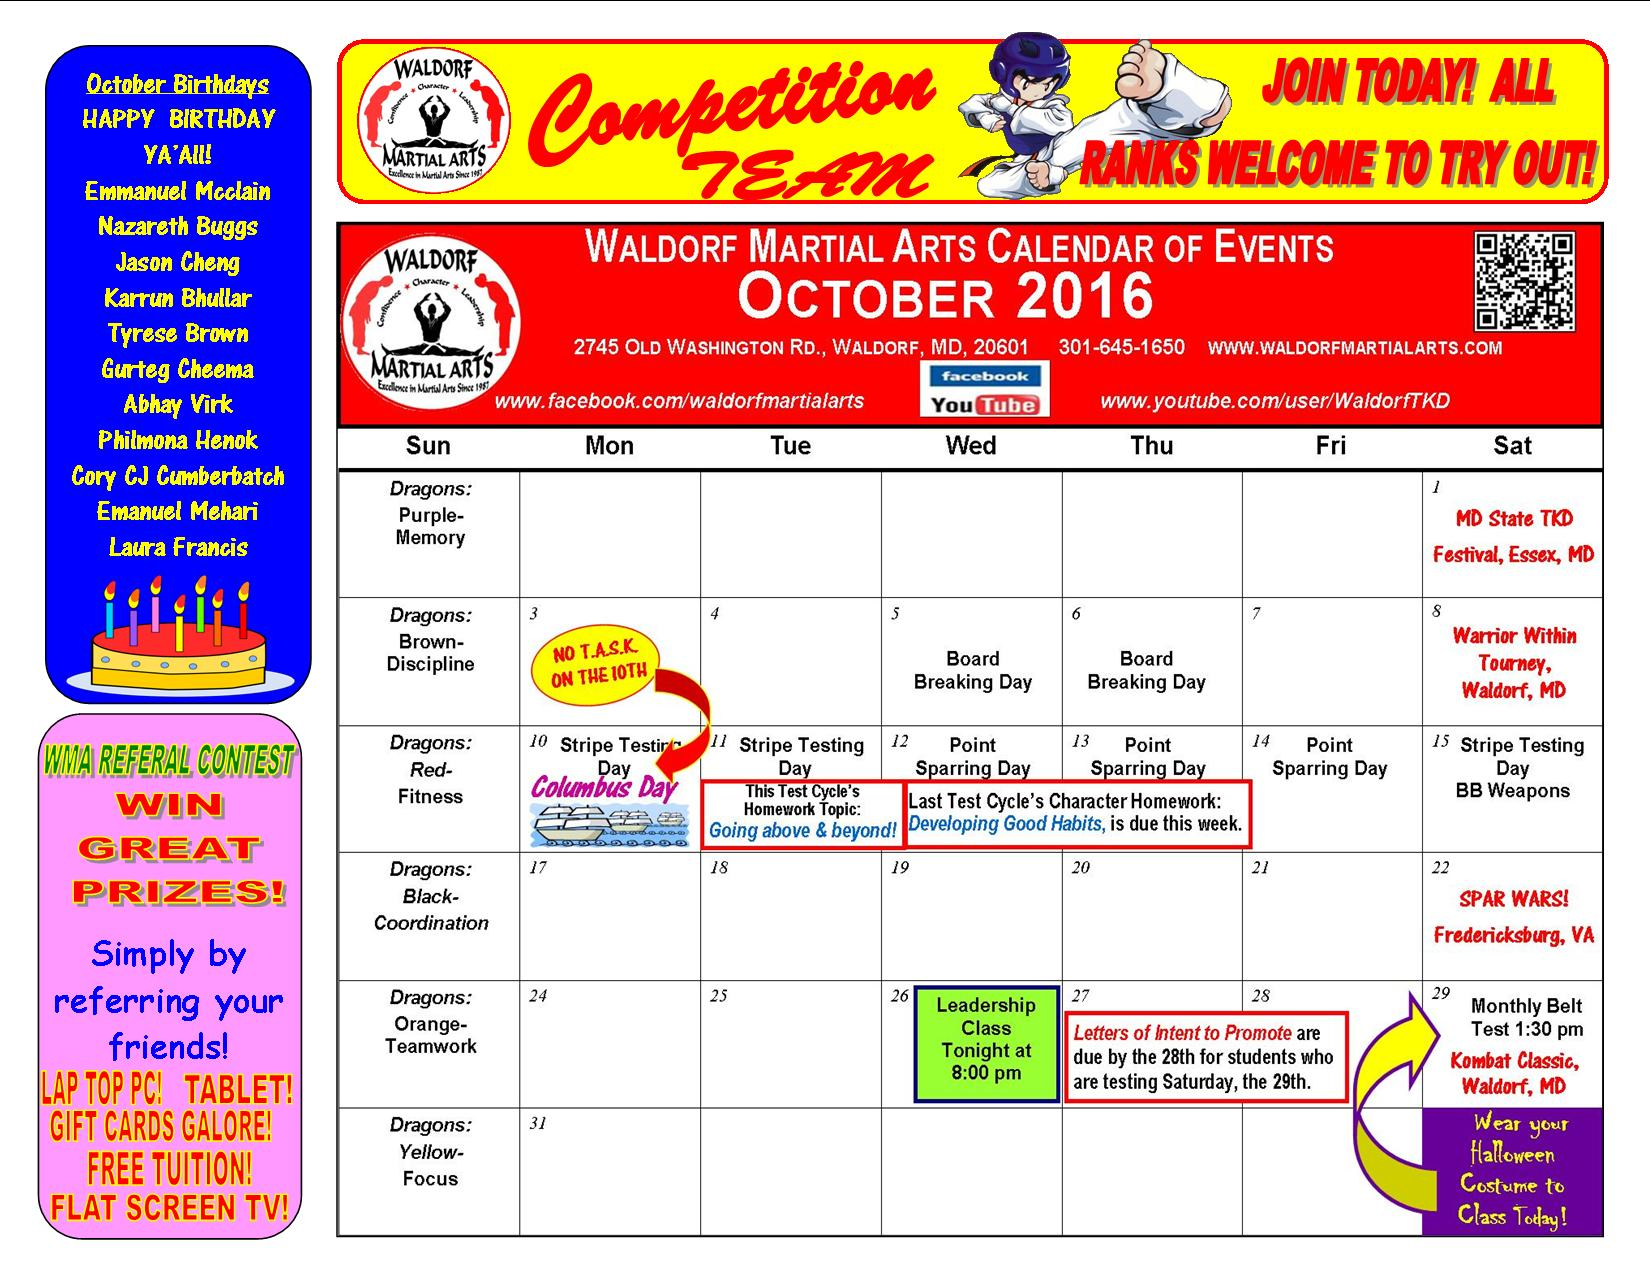 october-2016-calendar-of-events-and-news